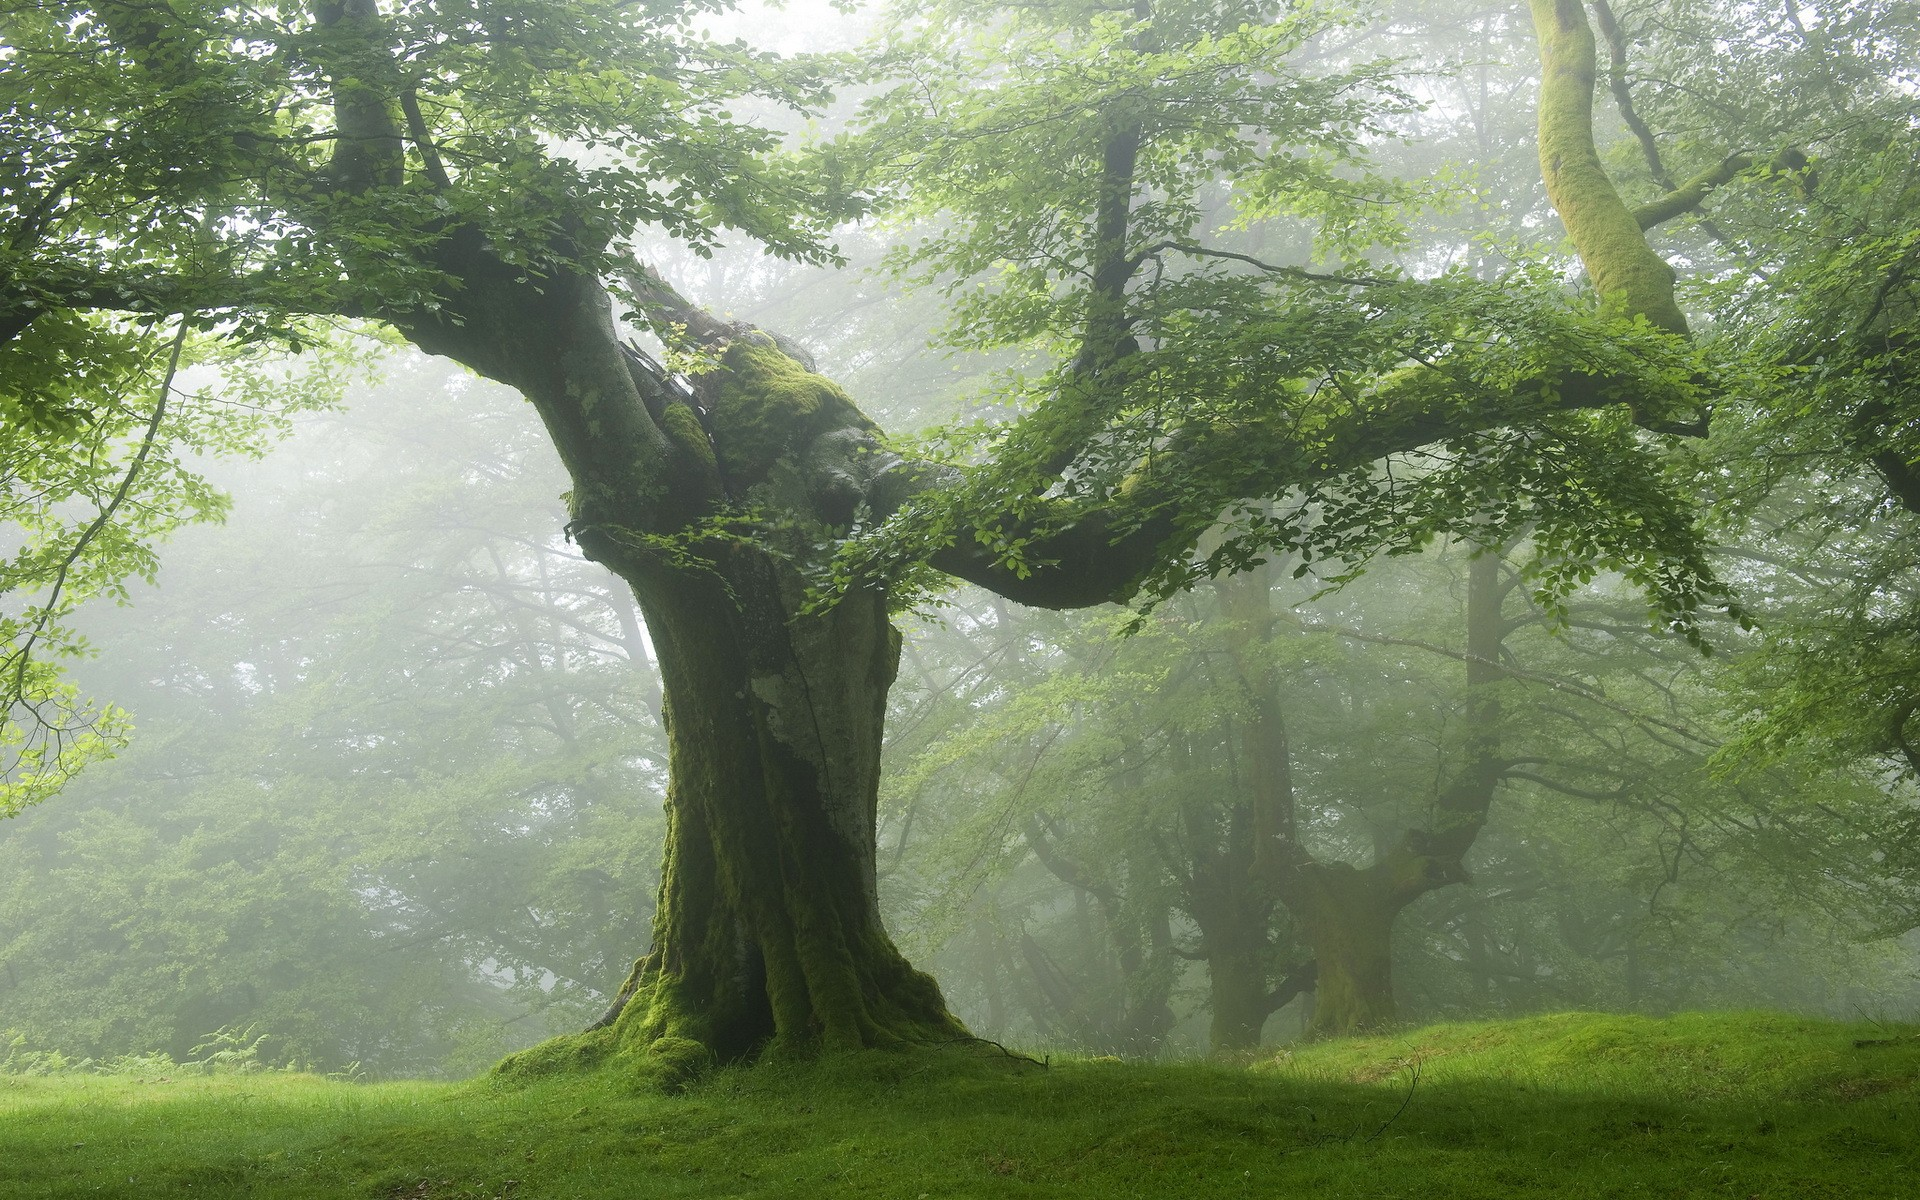 scenery enchanted tree nature